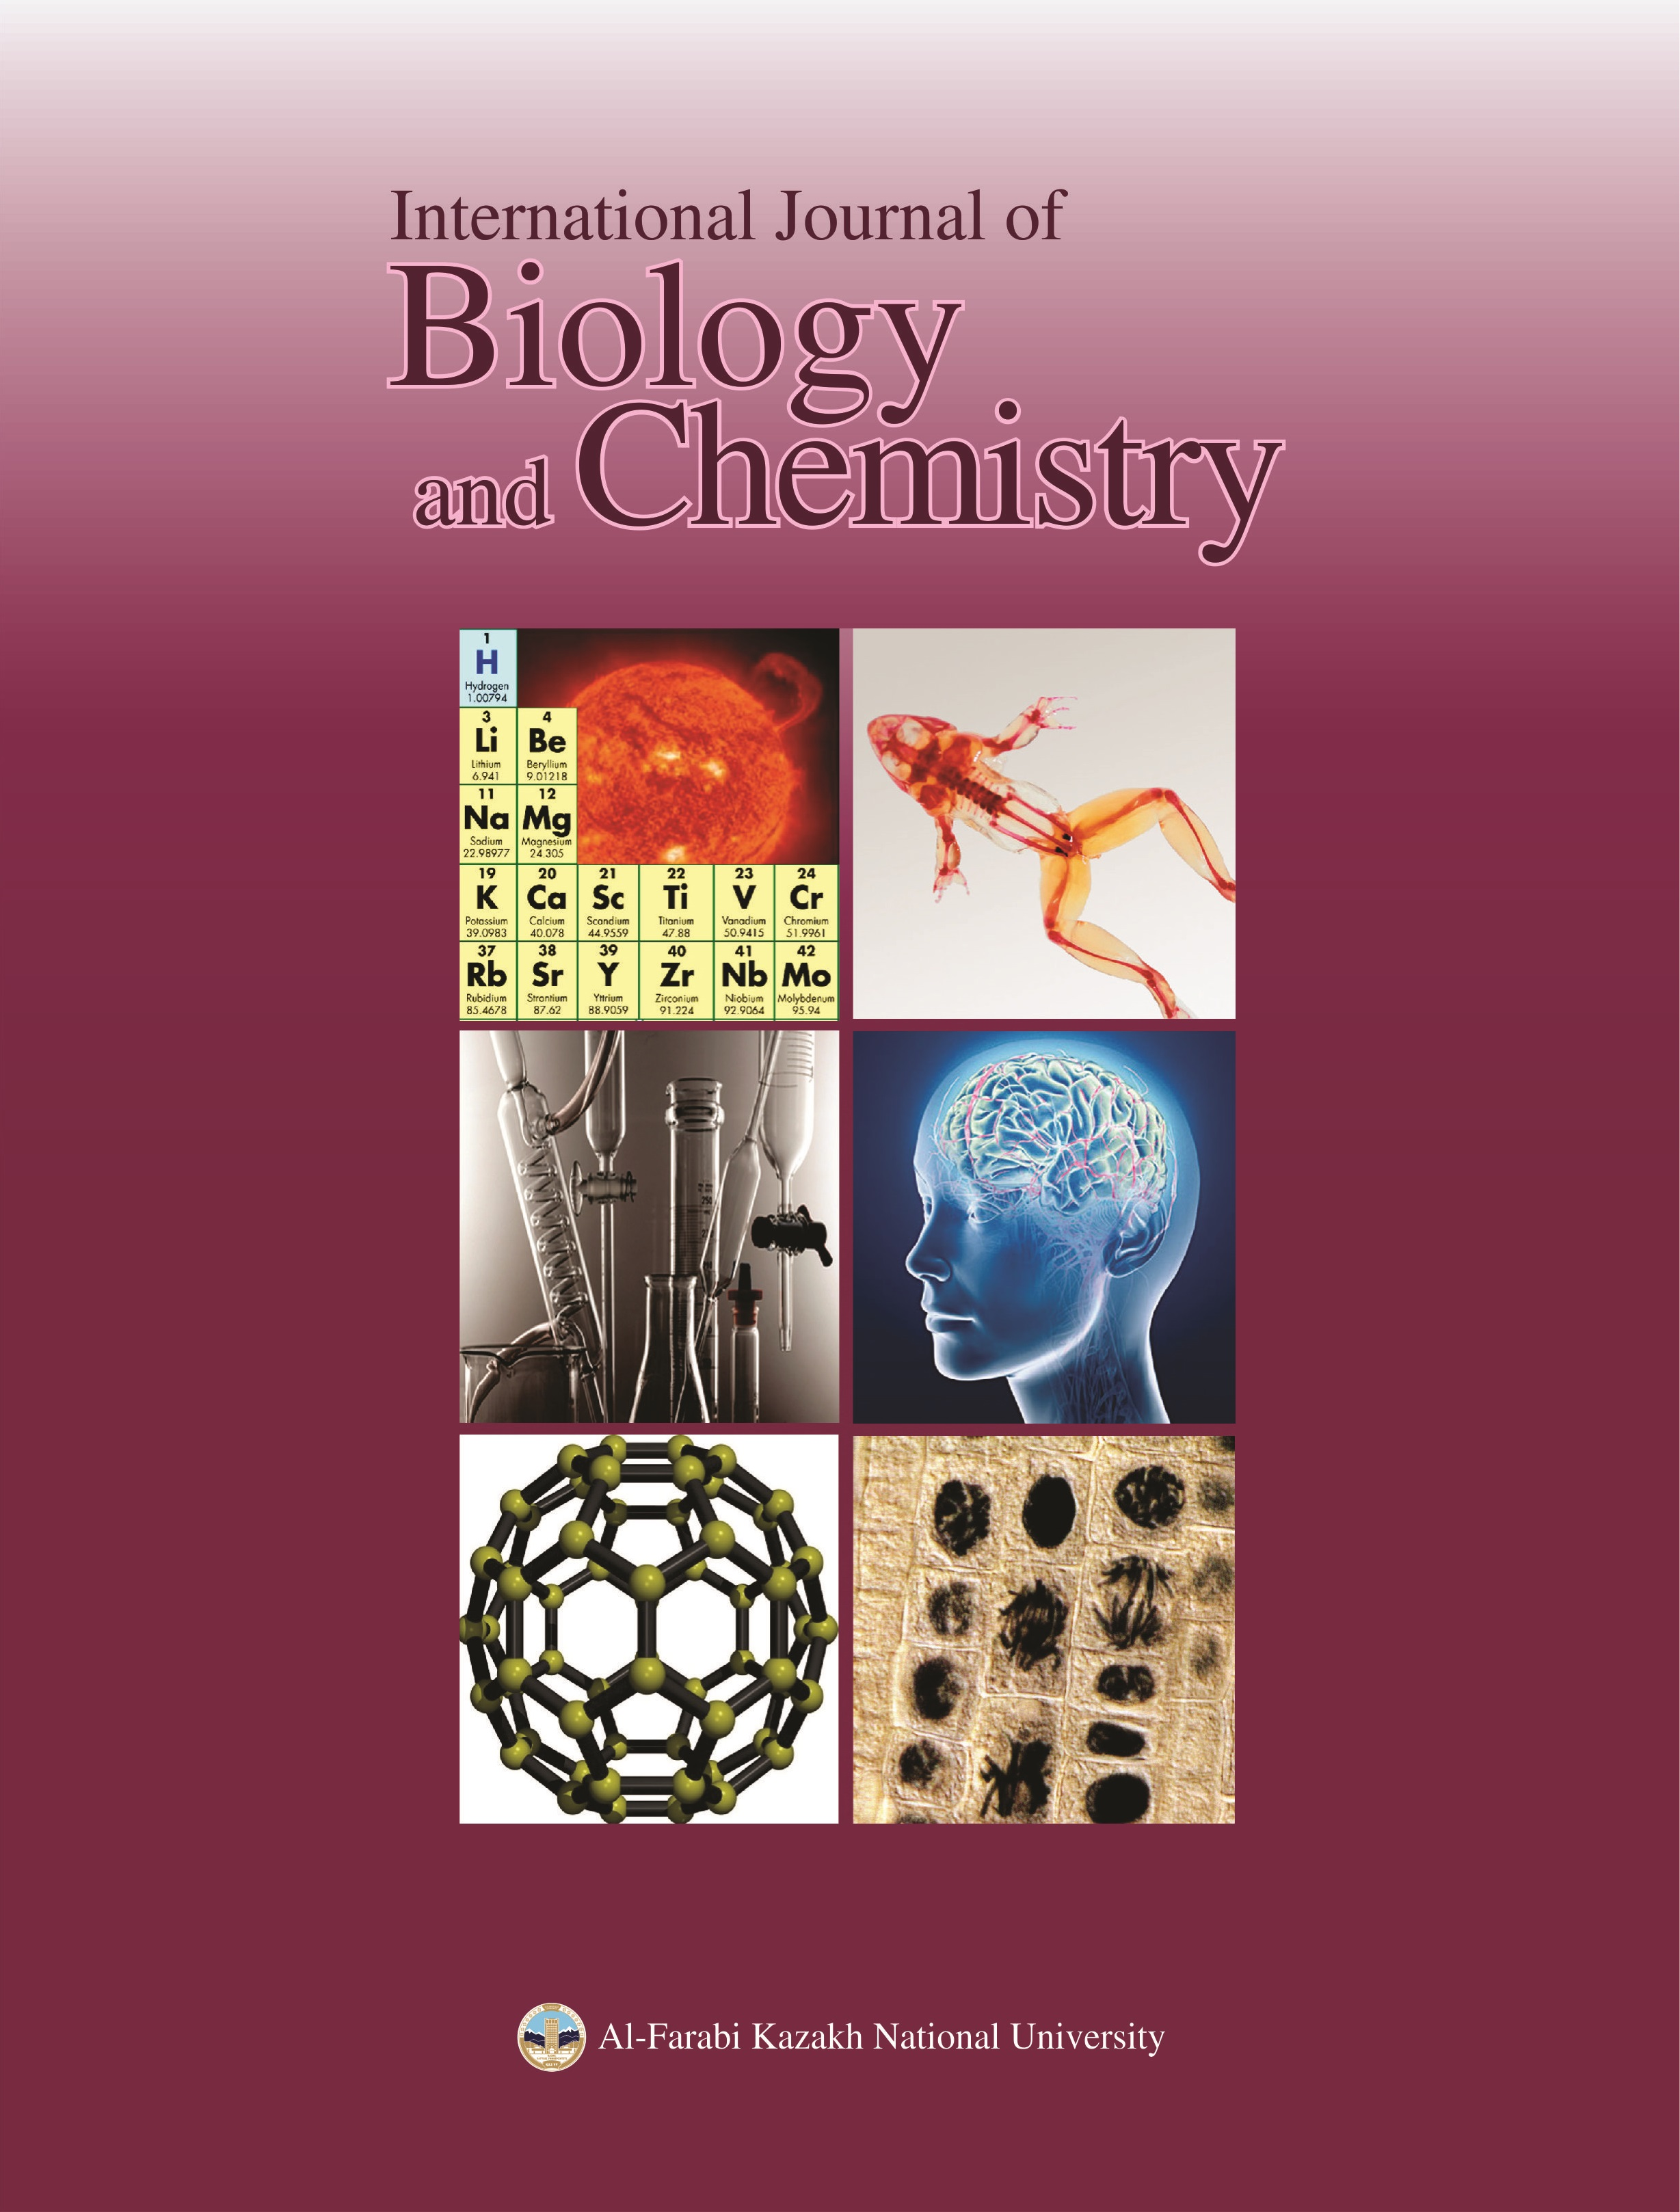 View Vol. 7 No. 1 (2014): International Journal of Biology and Chemistry